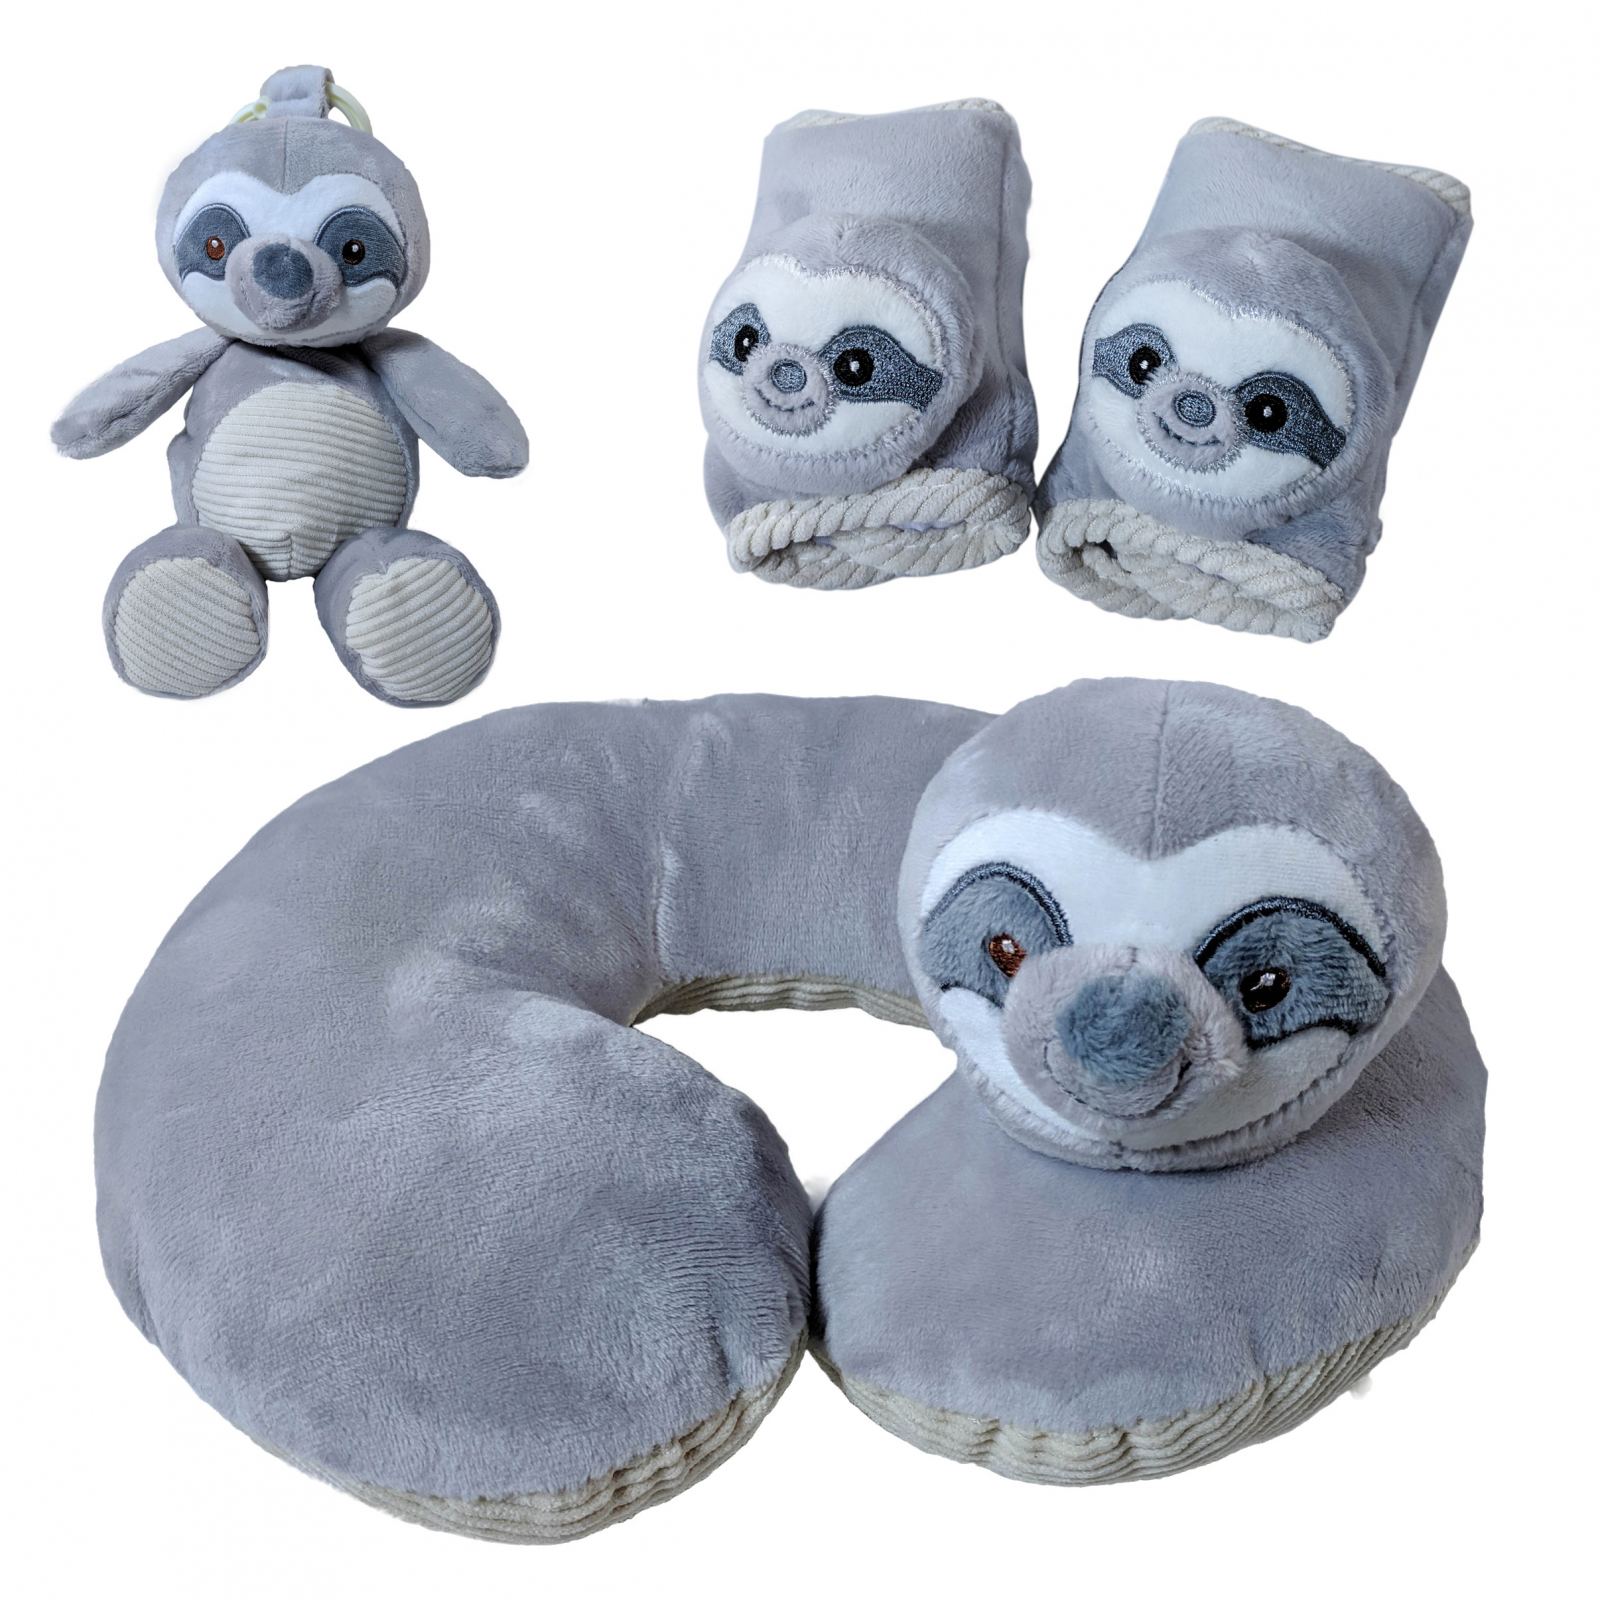 Kellybaby Grey Sloth Soft Plush Baby Travel Bundle